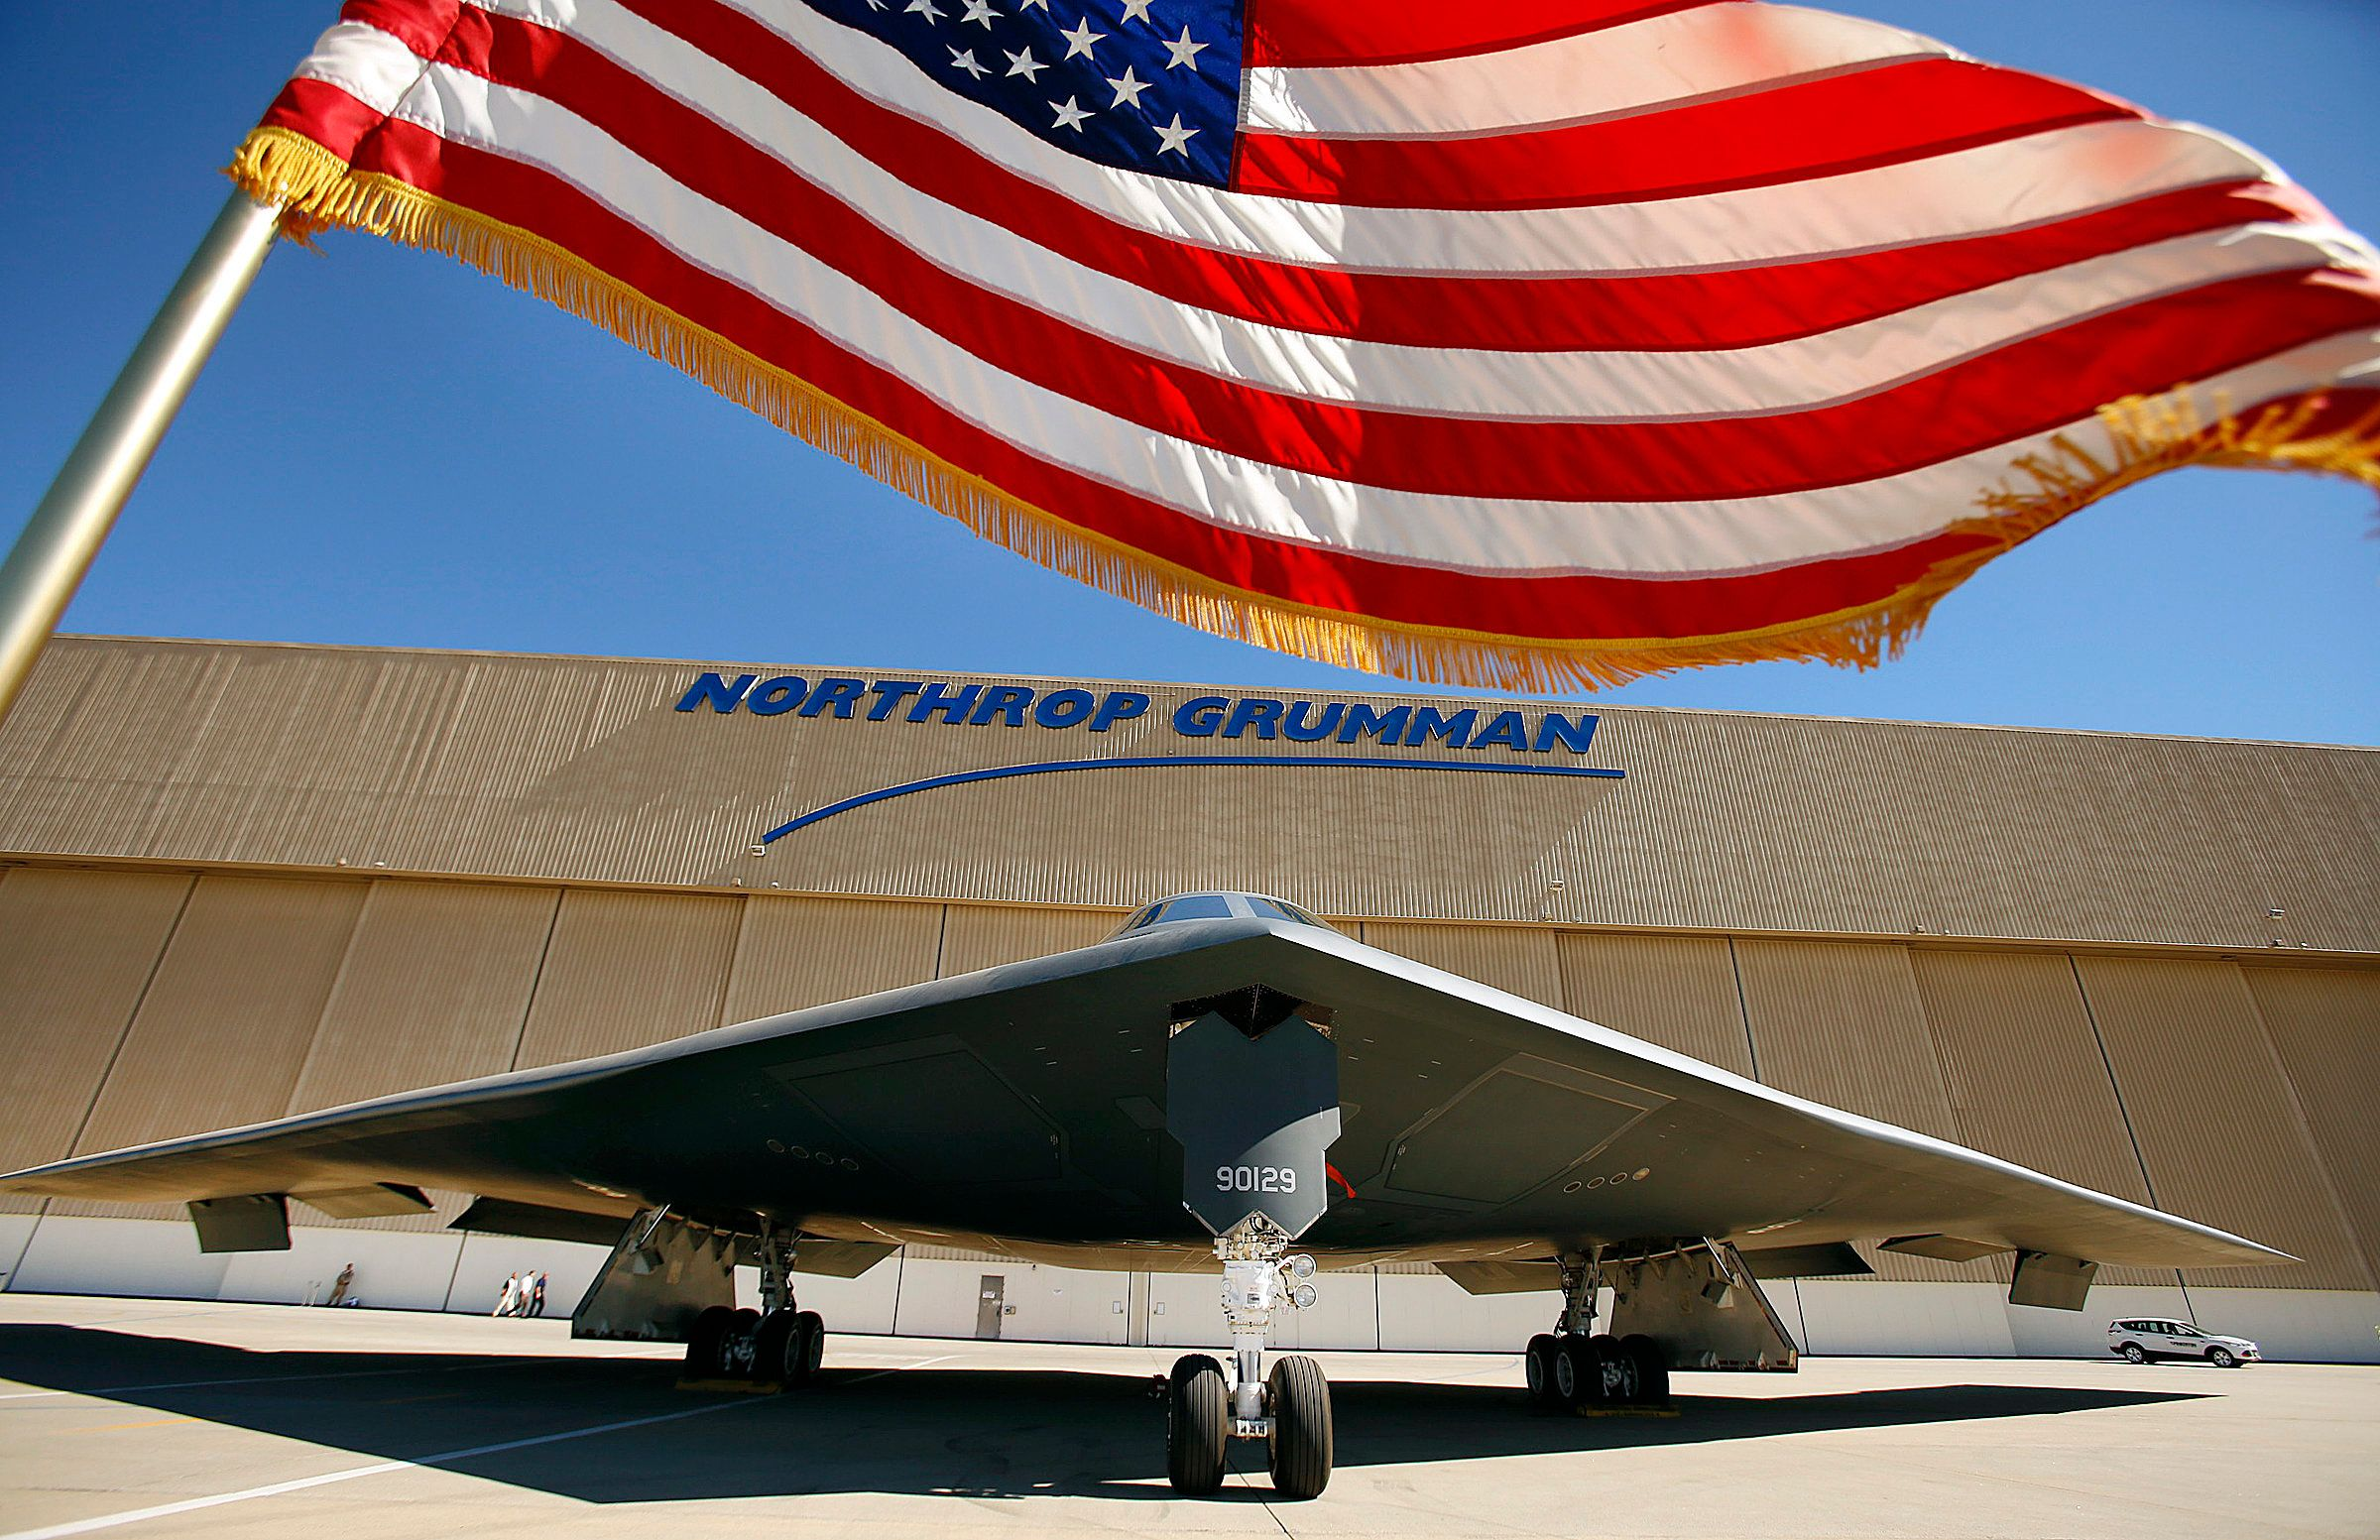 A U.S. Air Force B-2 Spirit Stealth bomber sits at the Northrop Grumman facility in Palmdale, California, in 2014.